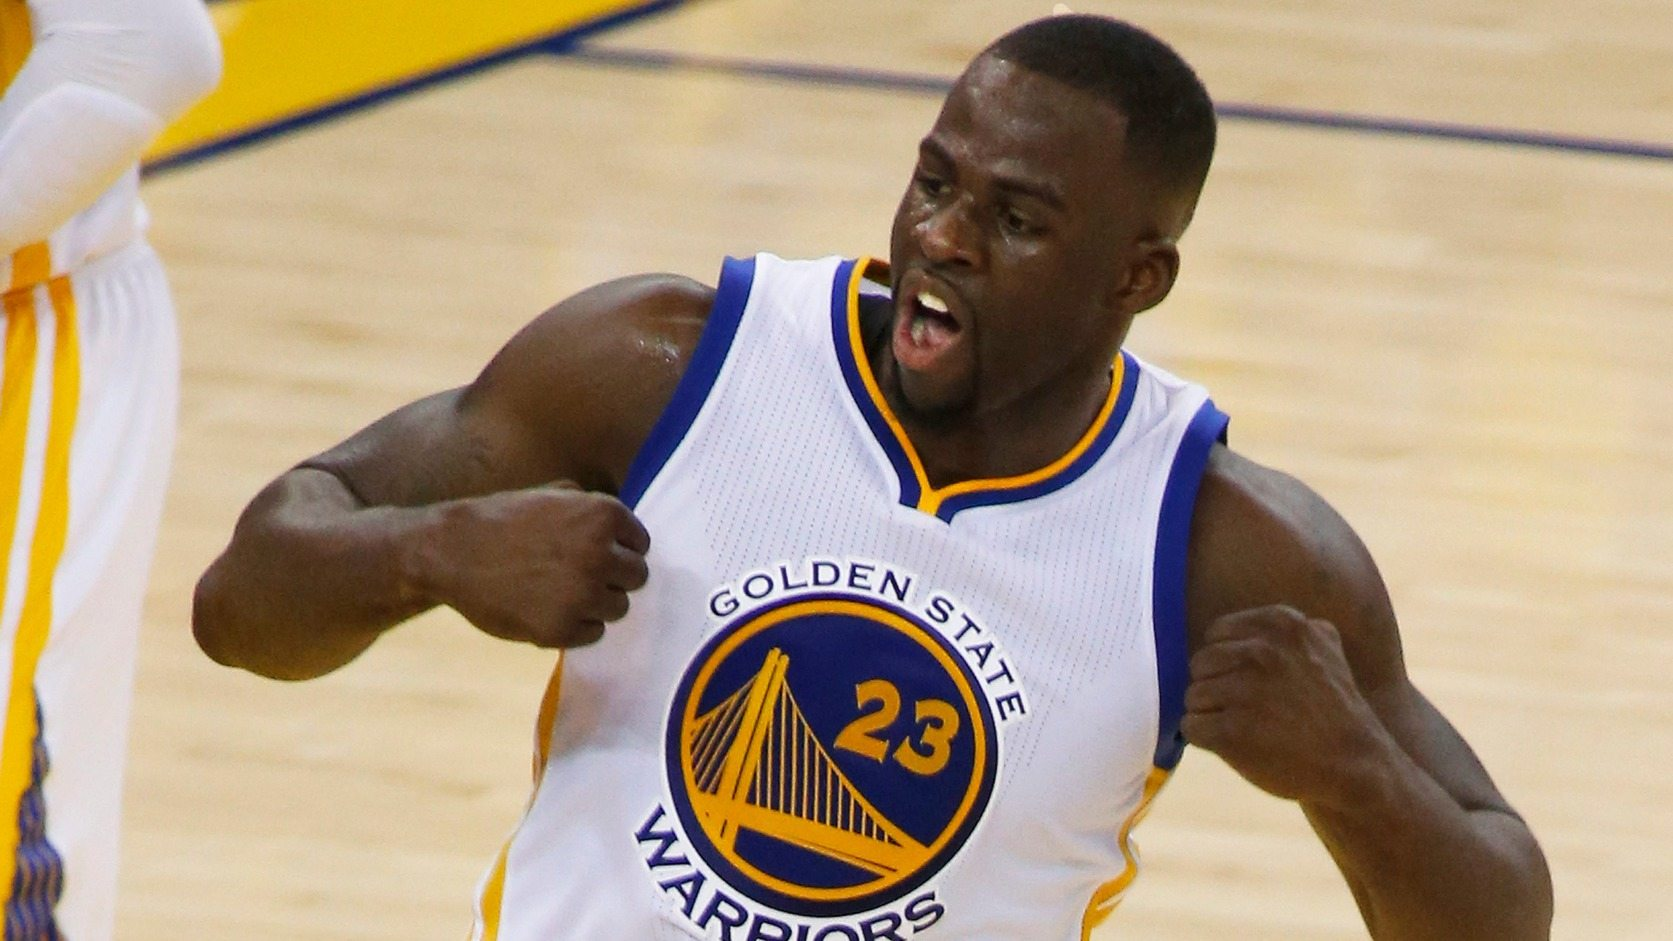 Golden State Warriors - Draymond Green - fotó: EPA/Monica M. Davey